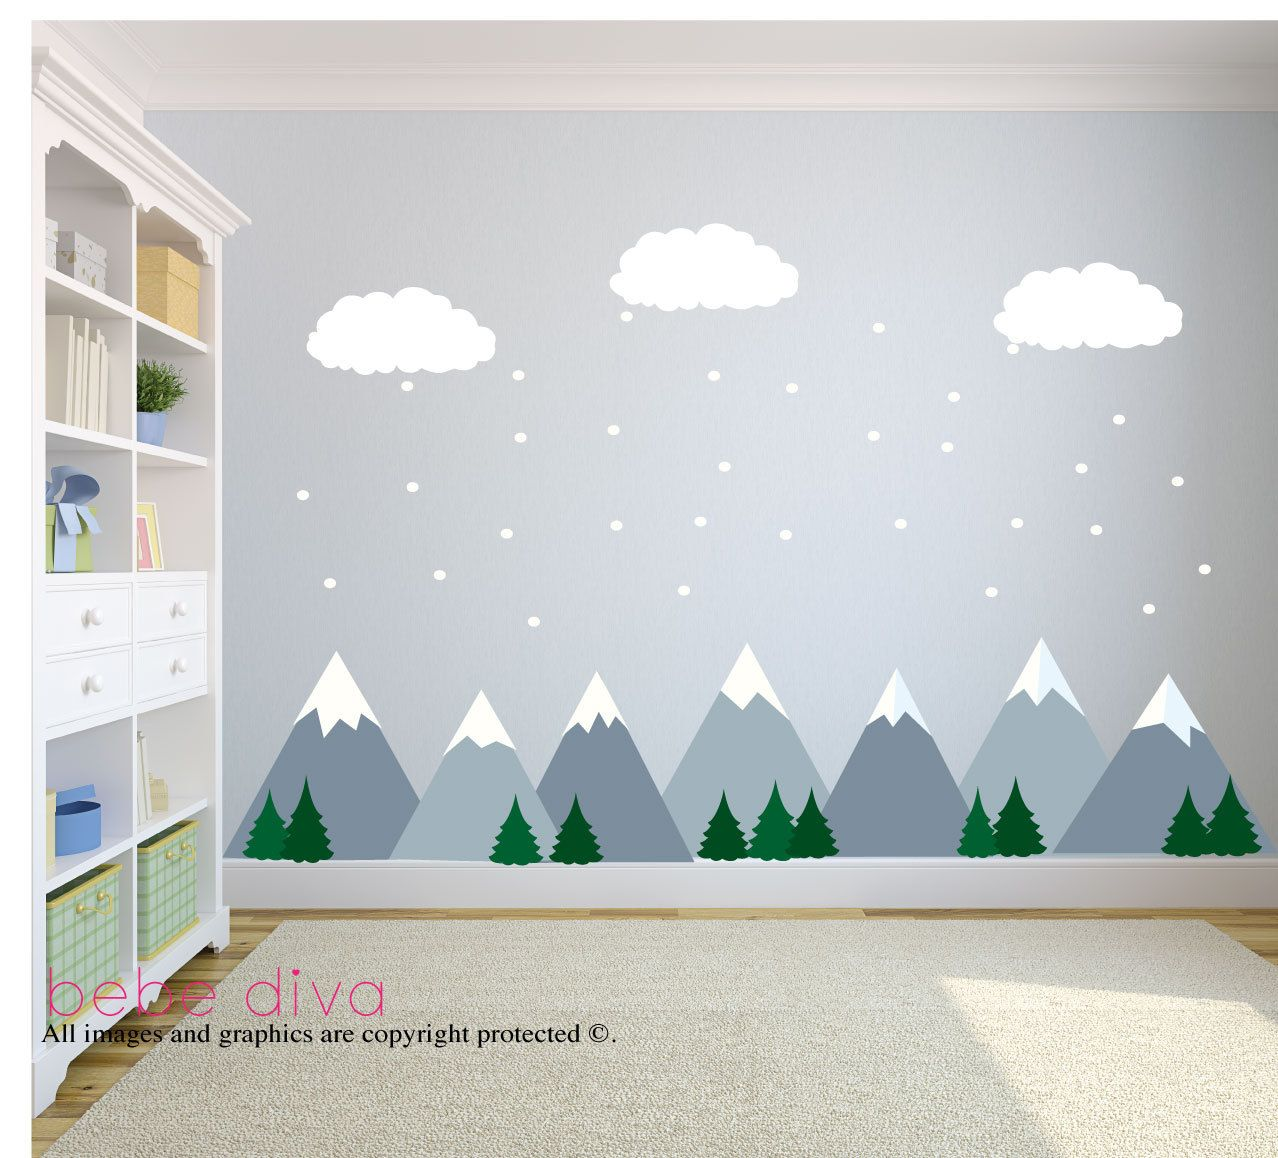 A great addition to any child's bedroom, play room, or